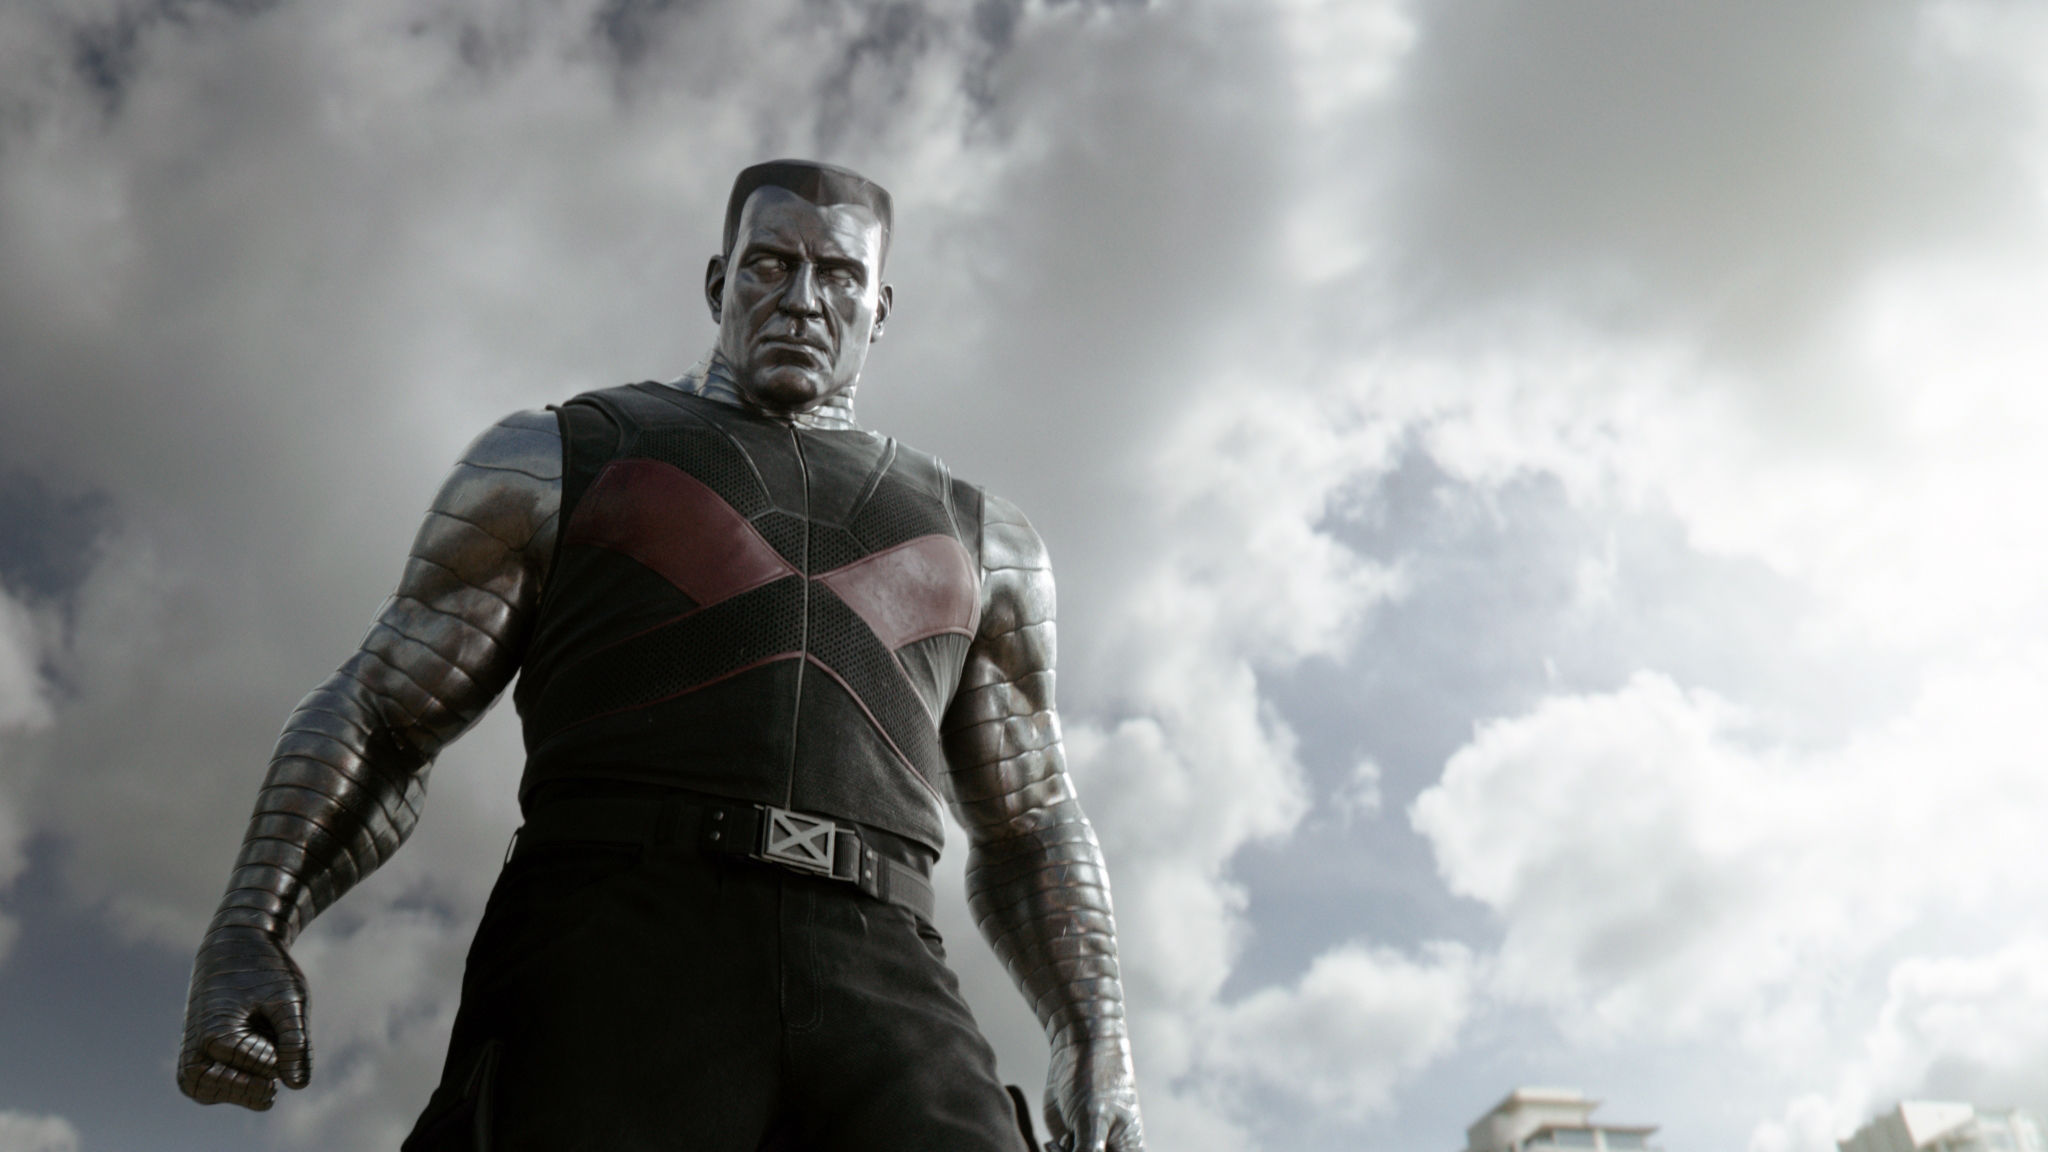 Deadpool Creator Says Colossus Has Substantial Role In Movie